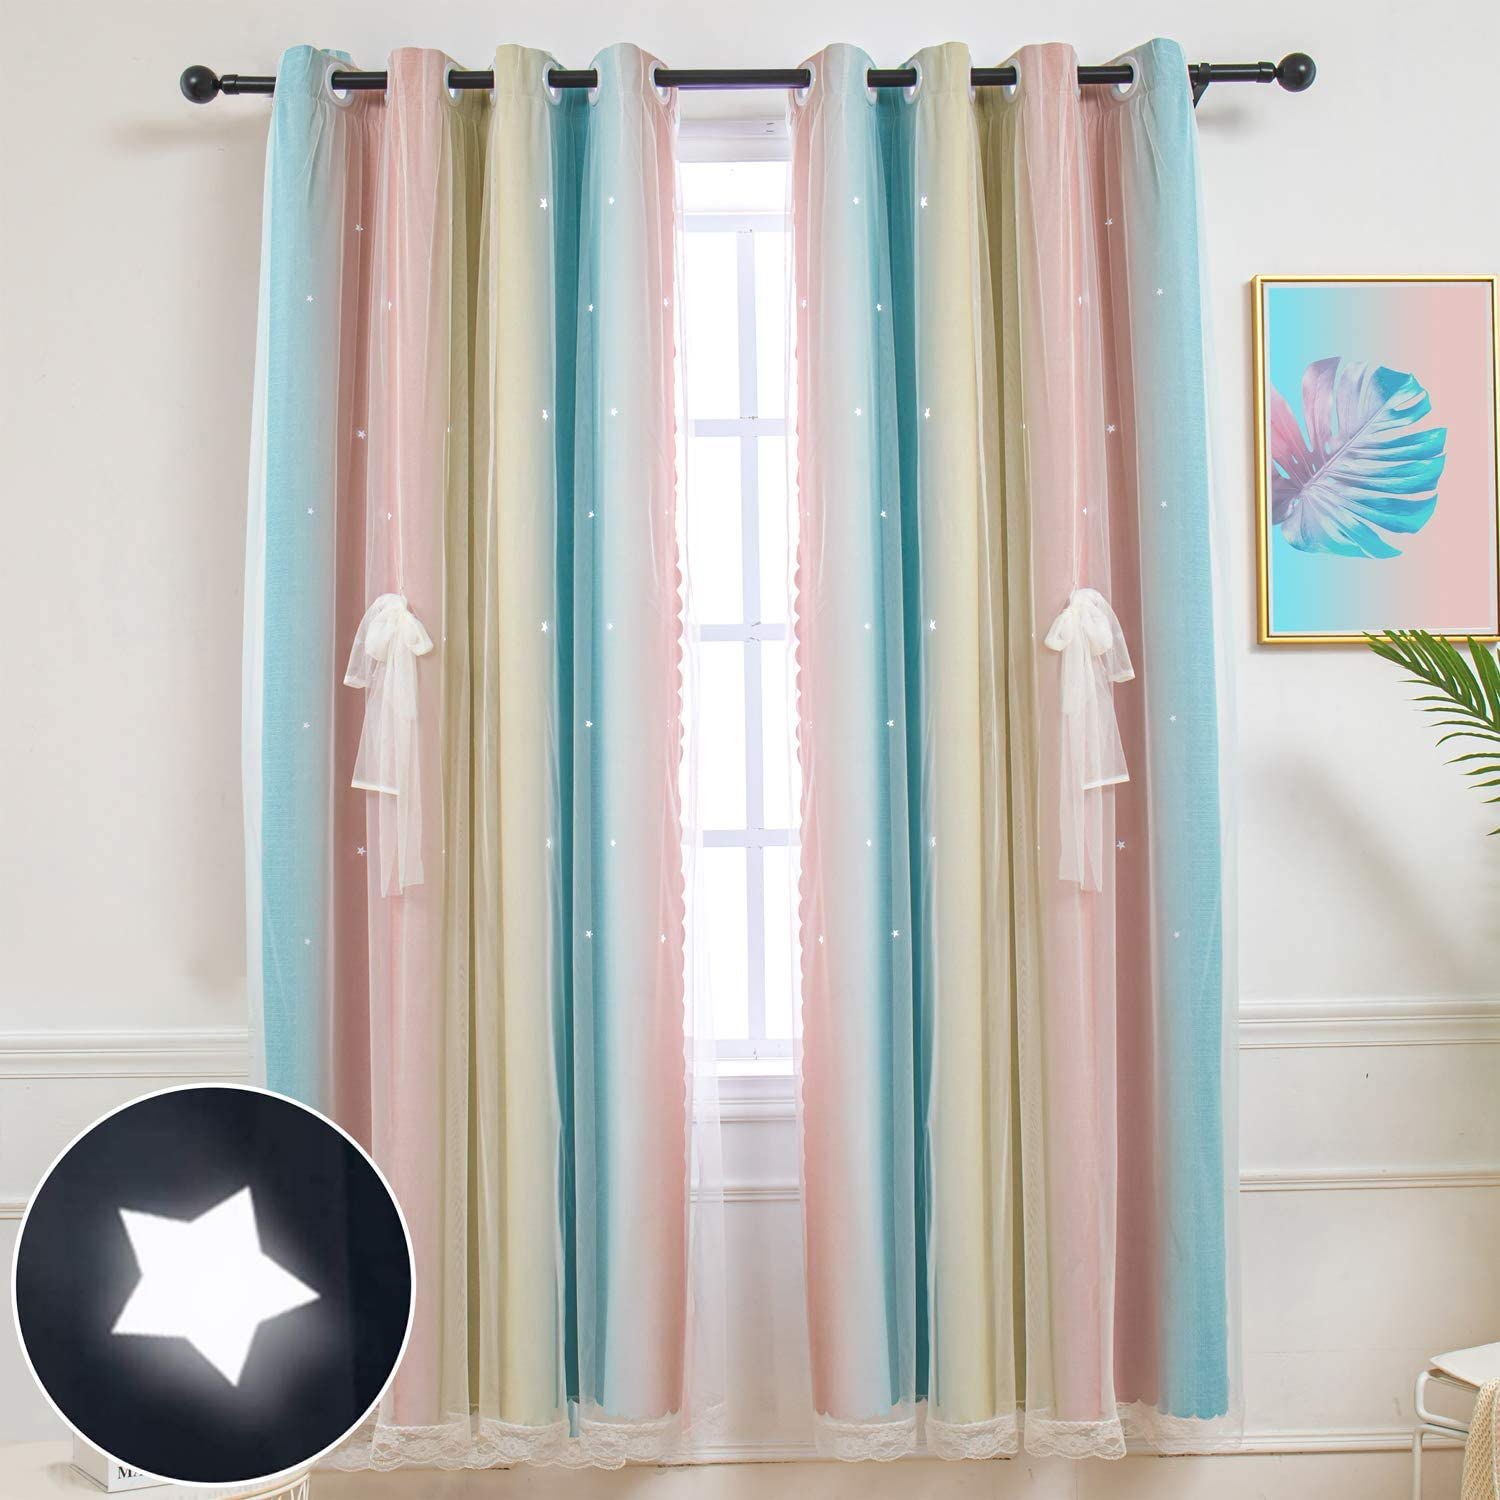 Hughapy Star Curtains for kids Girls Bedroom Room Darkening Cute Window Decorative Blackout Curtain Colorful Double Layer Star Cut Out Curtains for Kitchen Small Cafe 2 Panels Pink//Grey, 35W x 45L